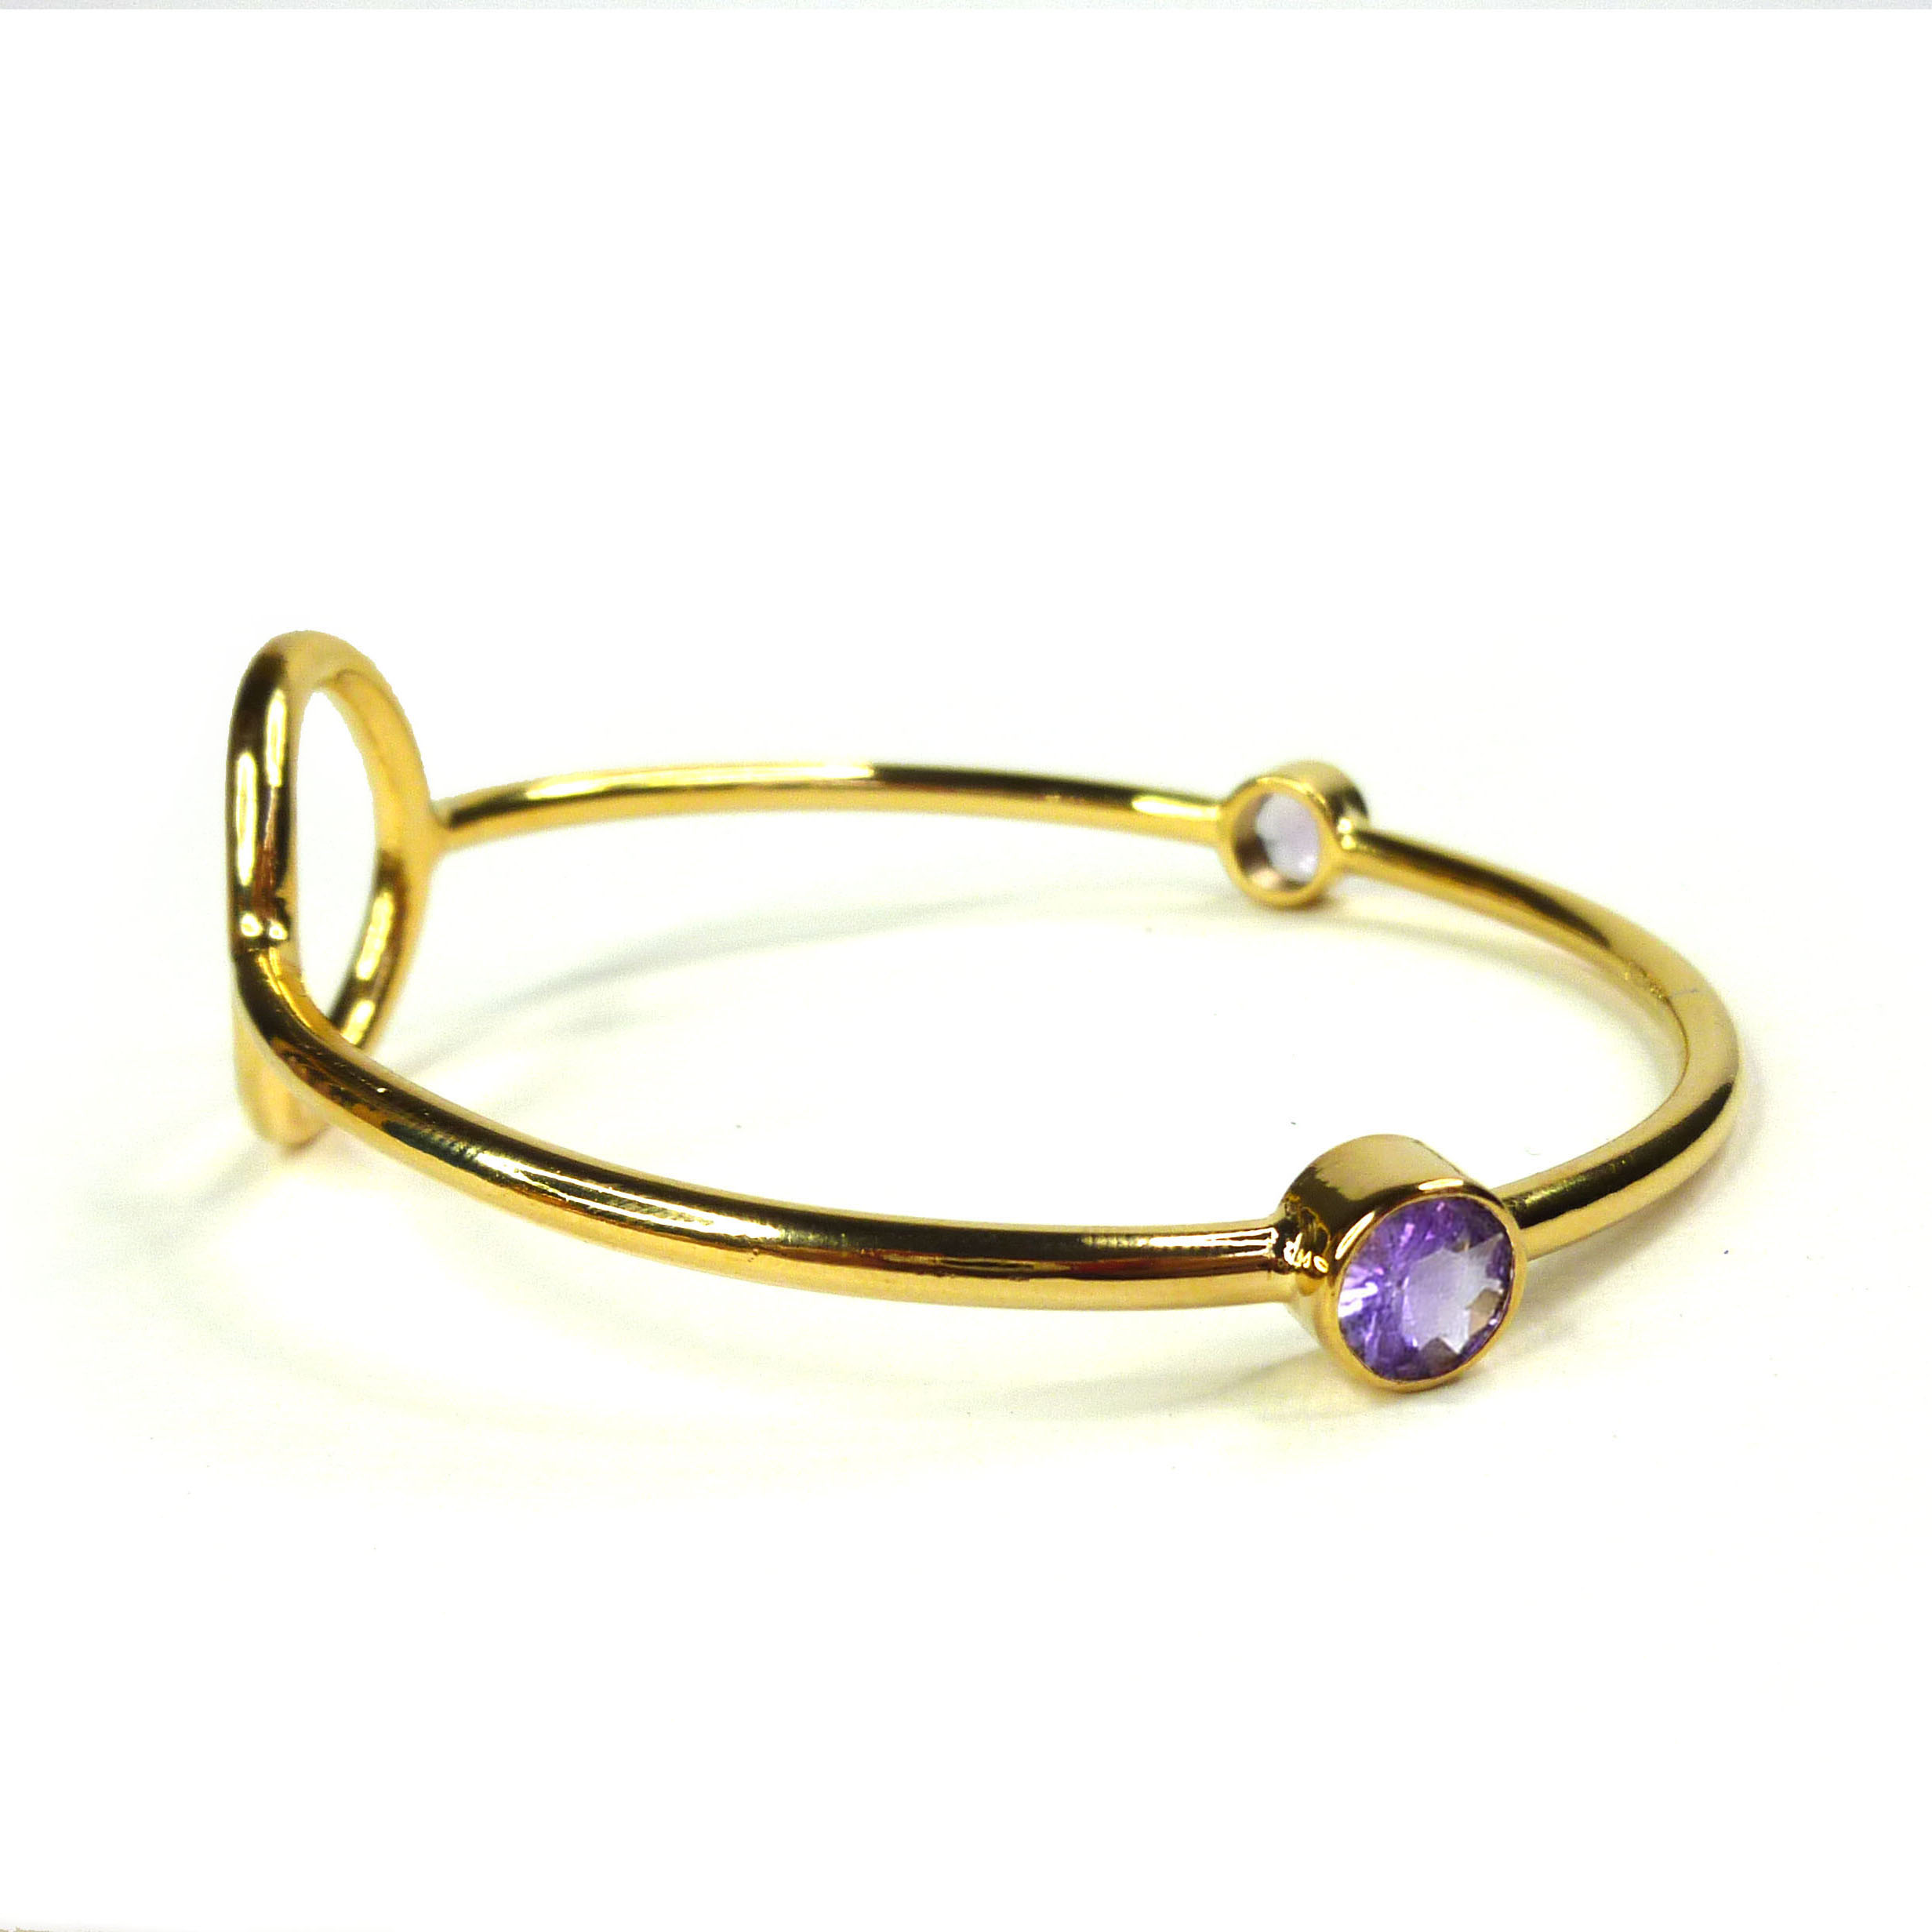 amethyst gemstone sterling free watches today cuff indonesia and shipping product jewelry overstock multi gold cawi bracelet yellow silver bangle bangles